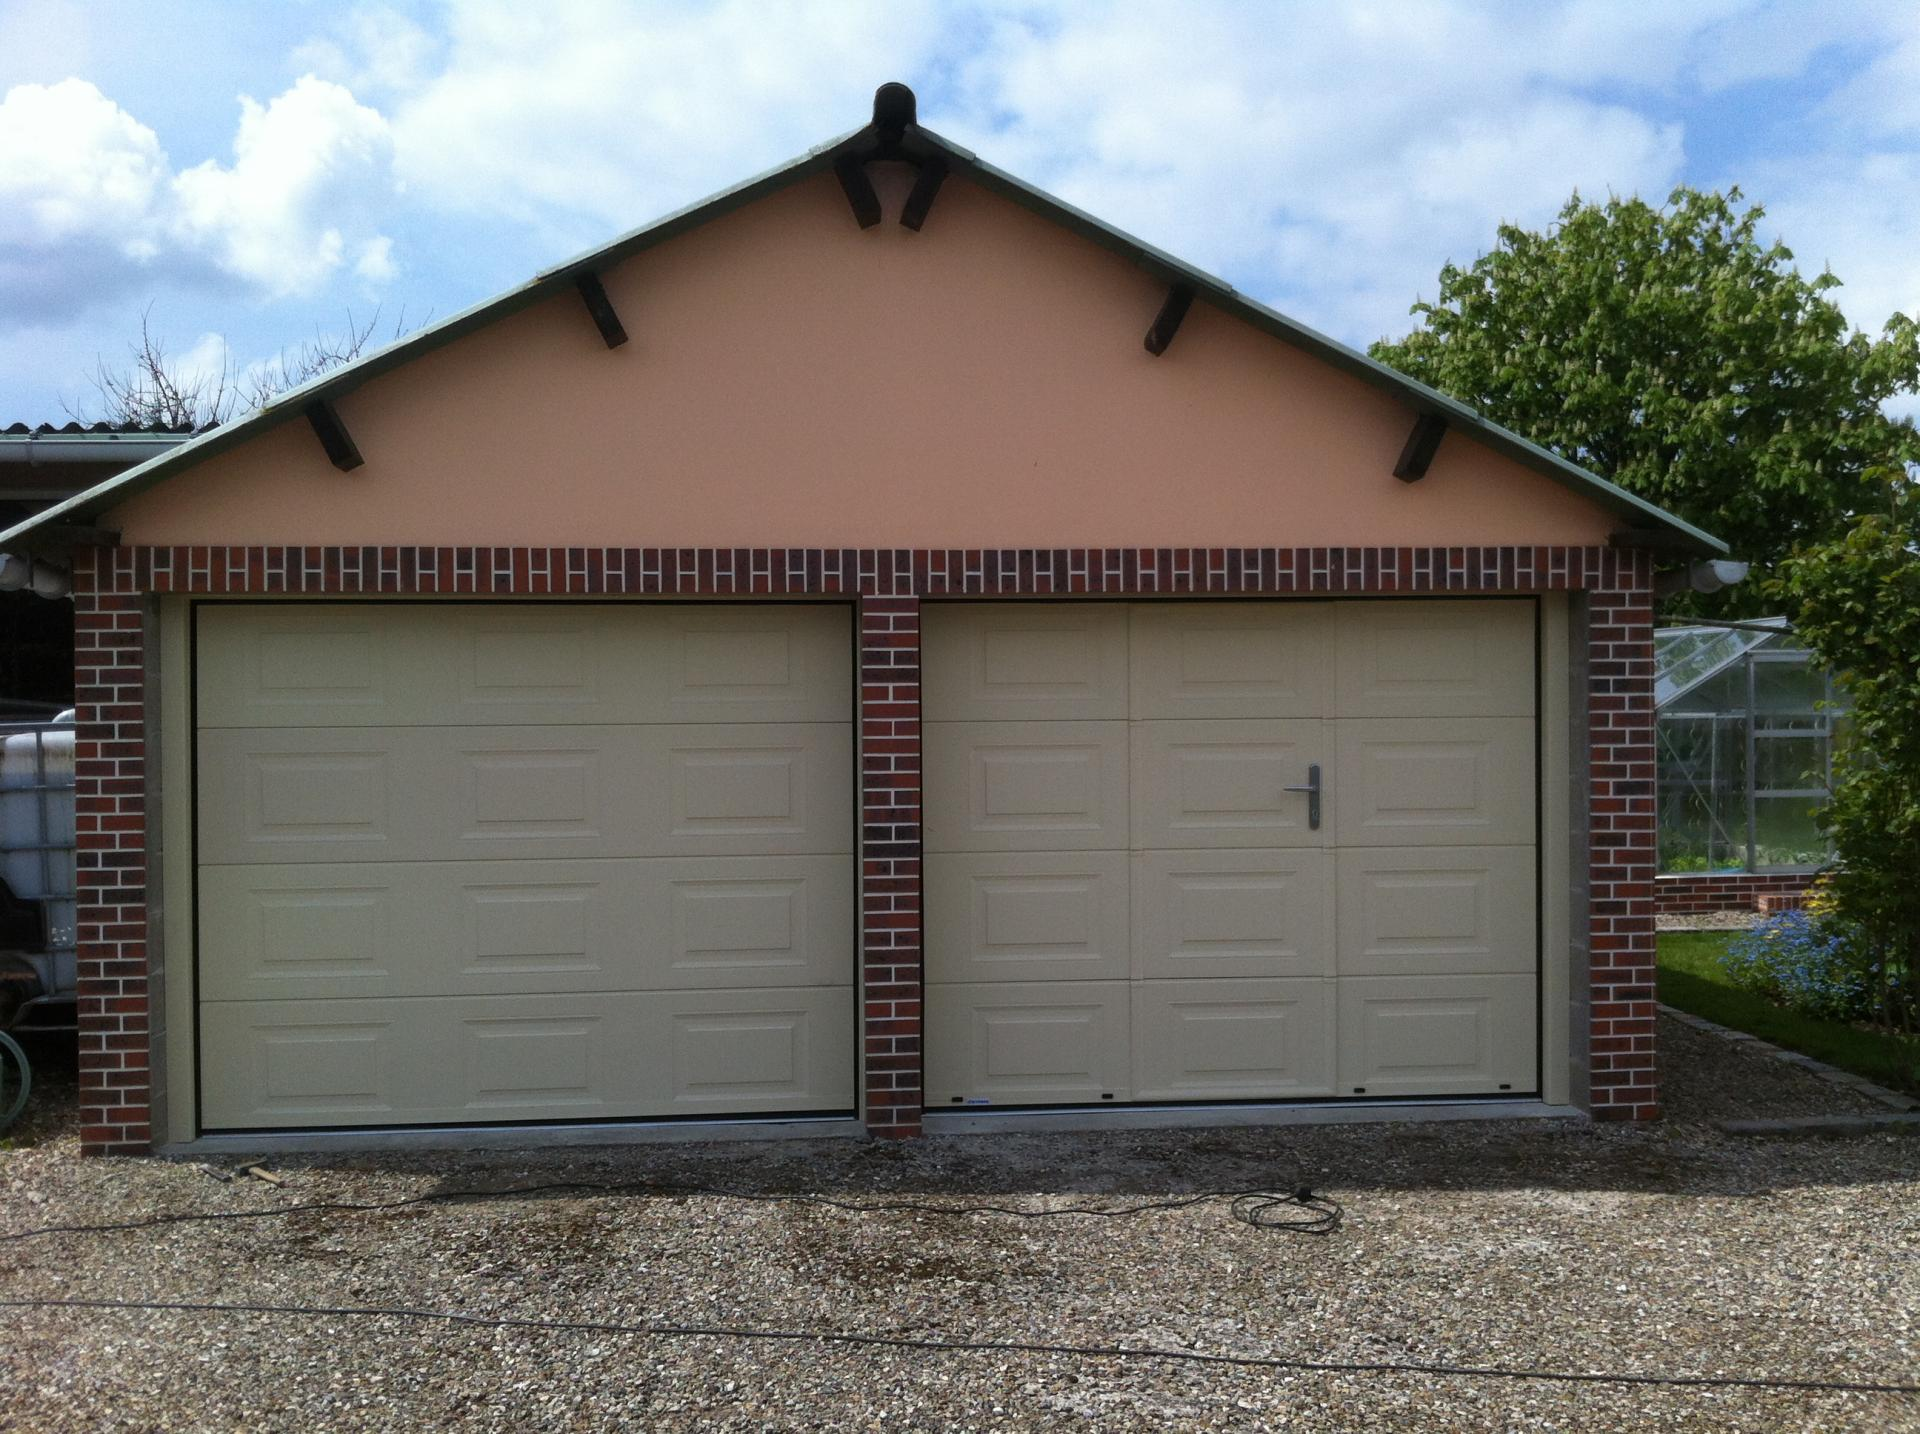 Portes de garage sectionnelles coulissantes basculantes for Porte garage sectionnelle